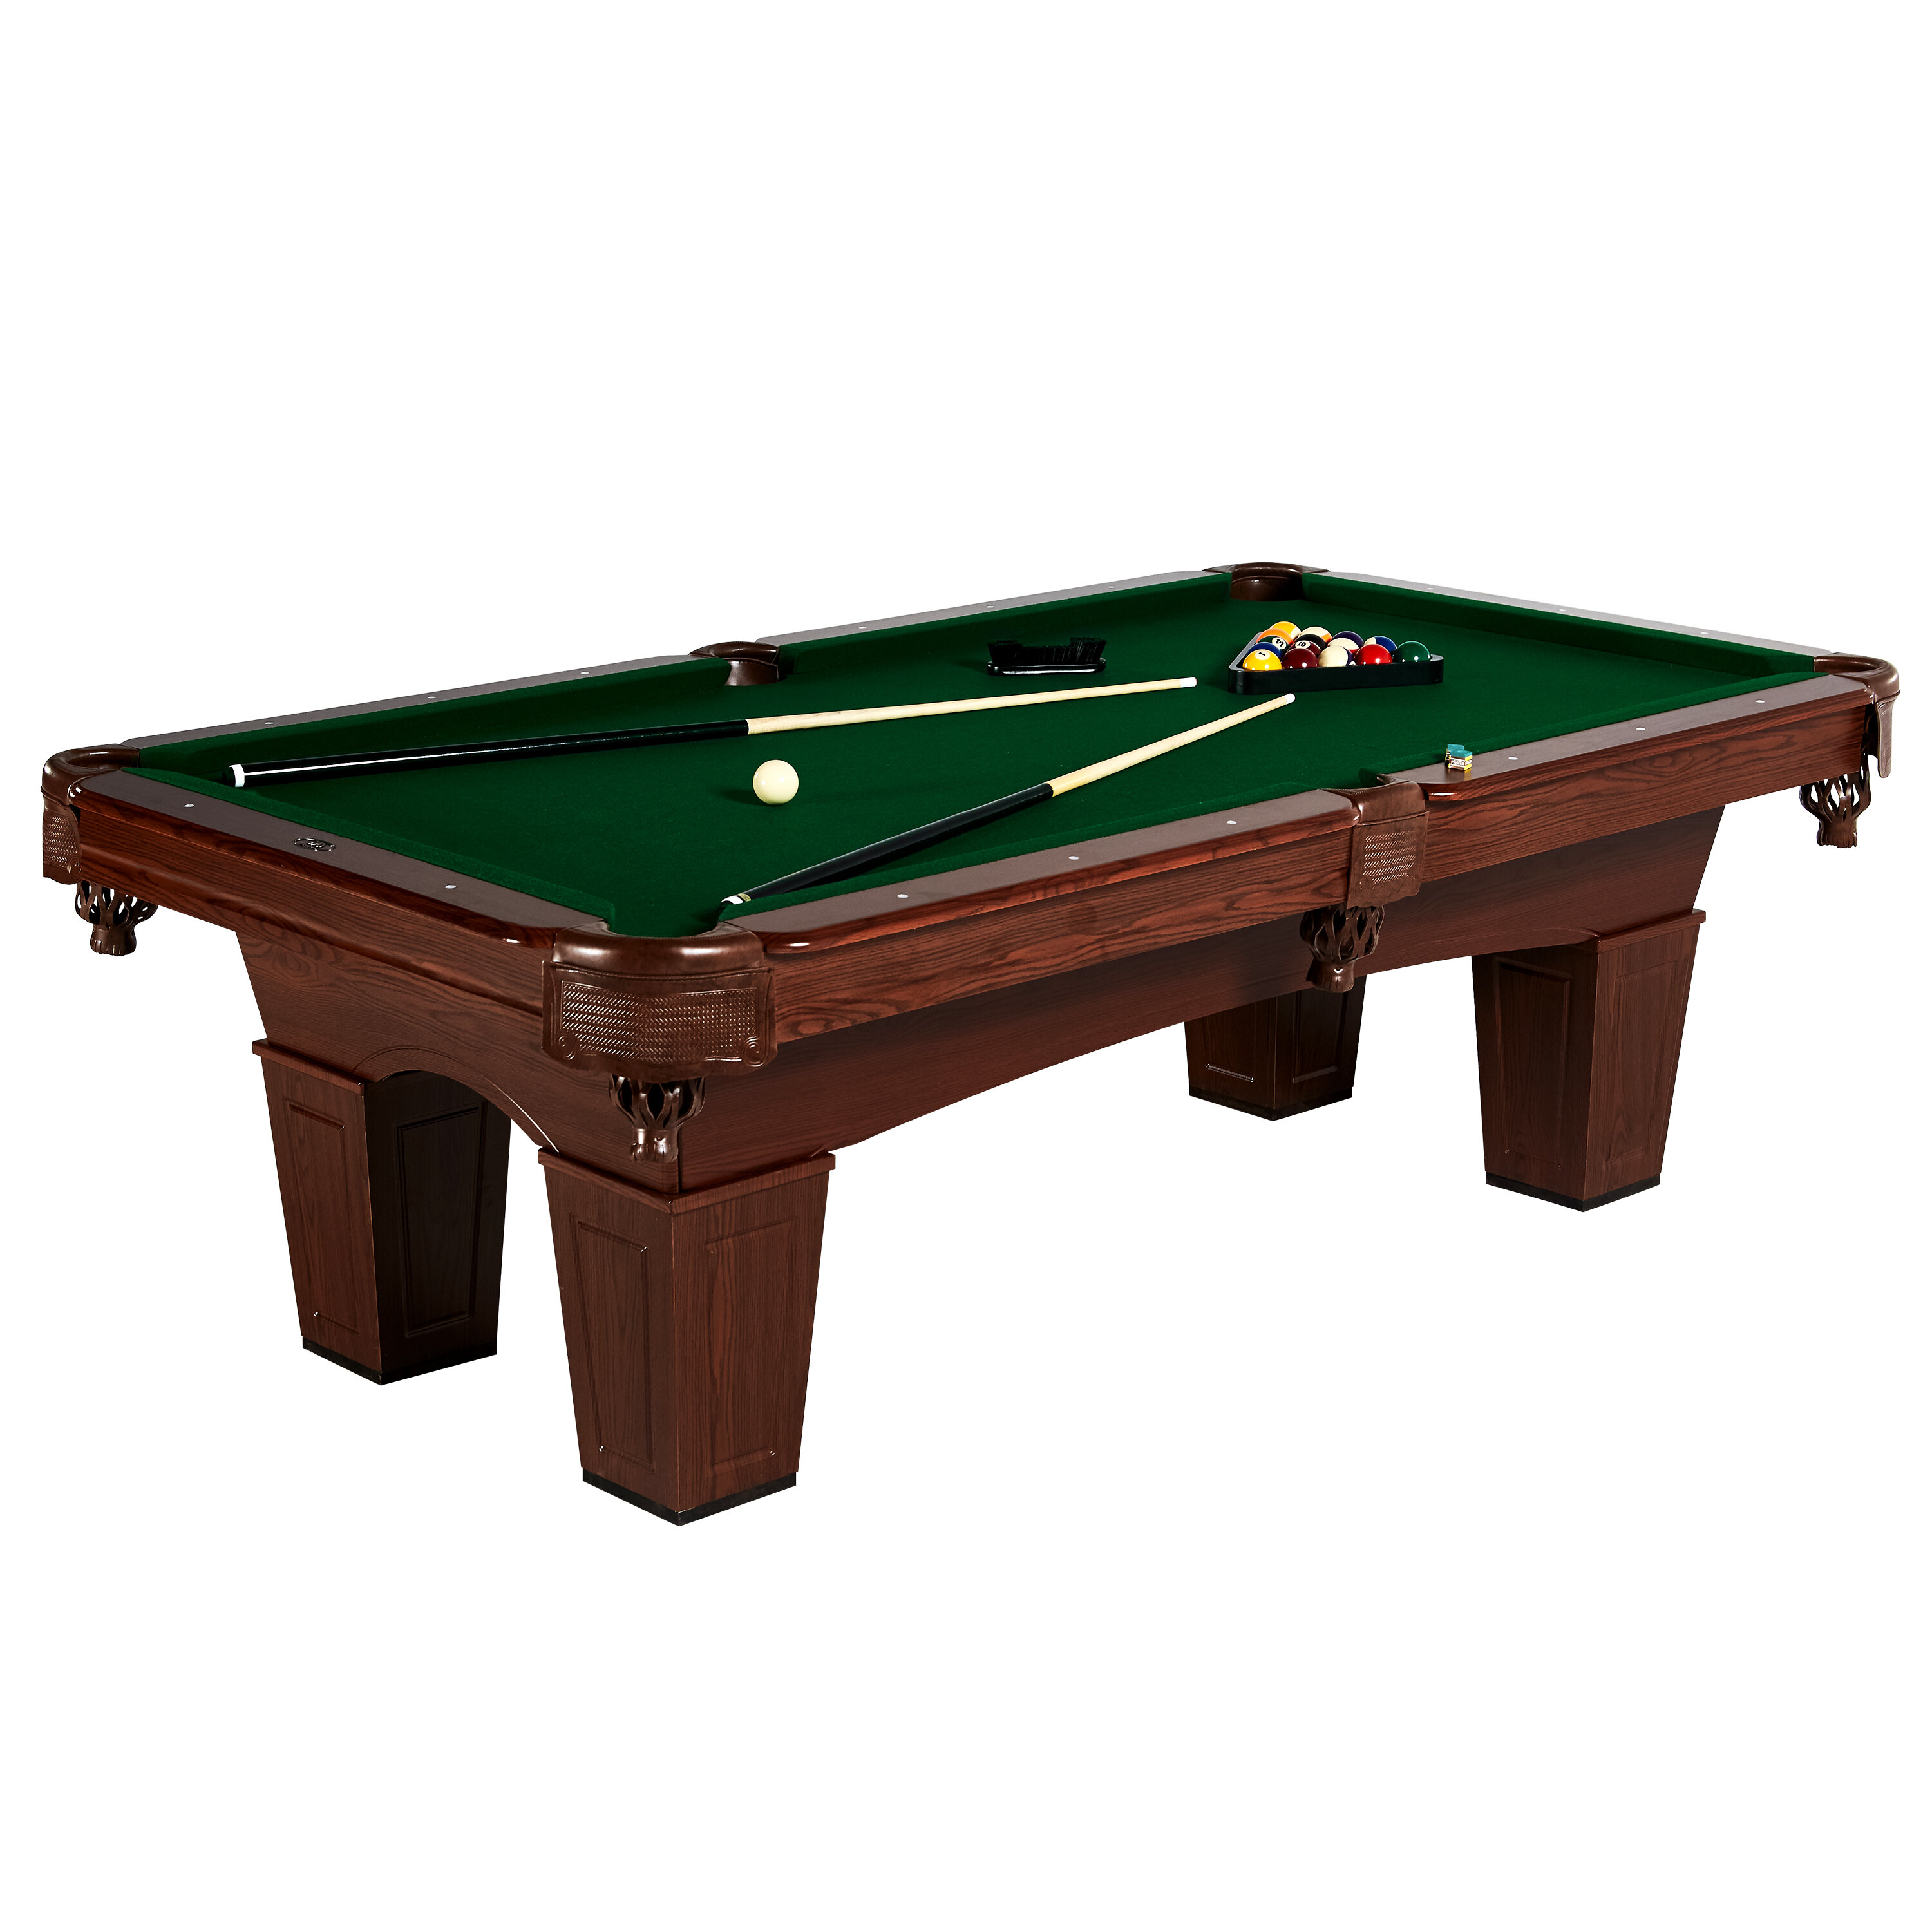 MD Sports Crestmont Billiard Table Reviews Wayfair - Pool table with no holes